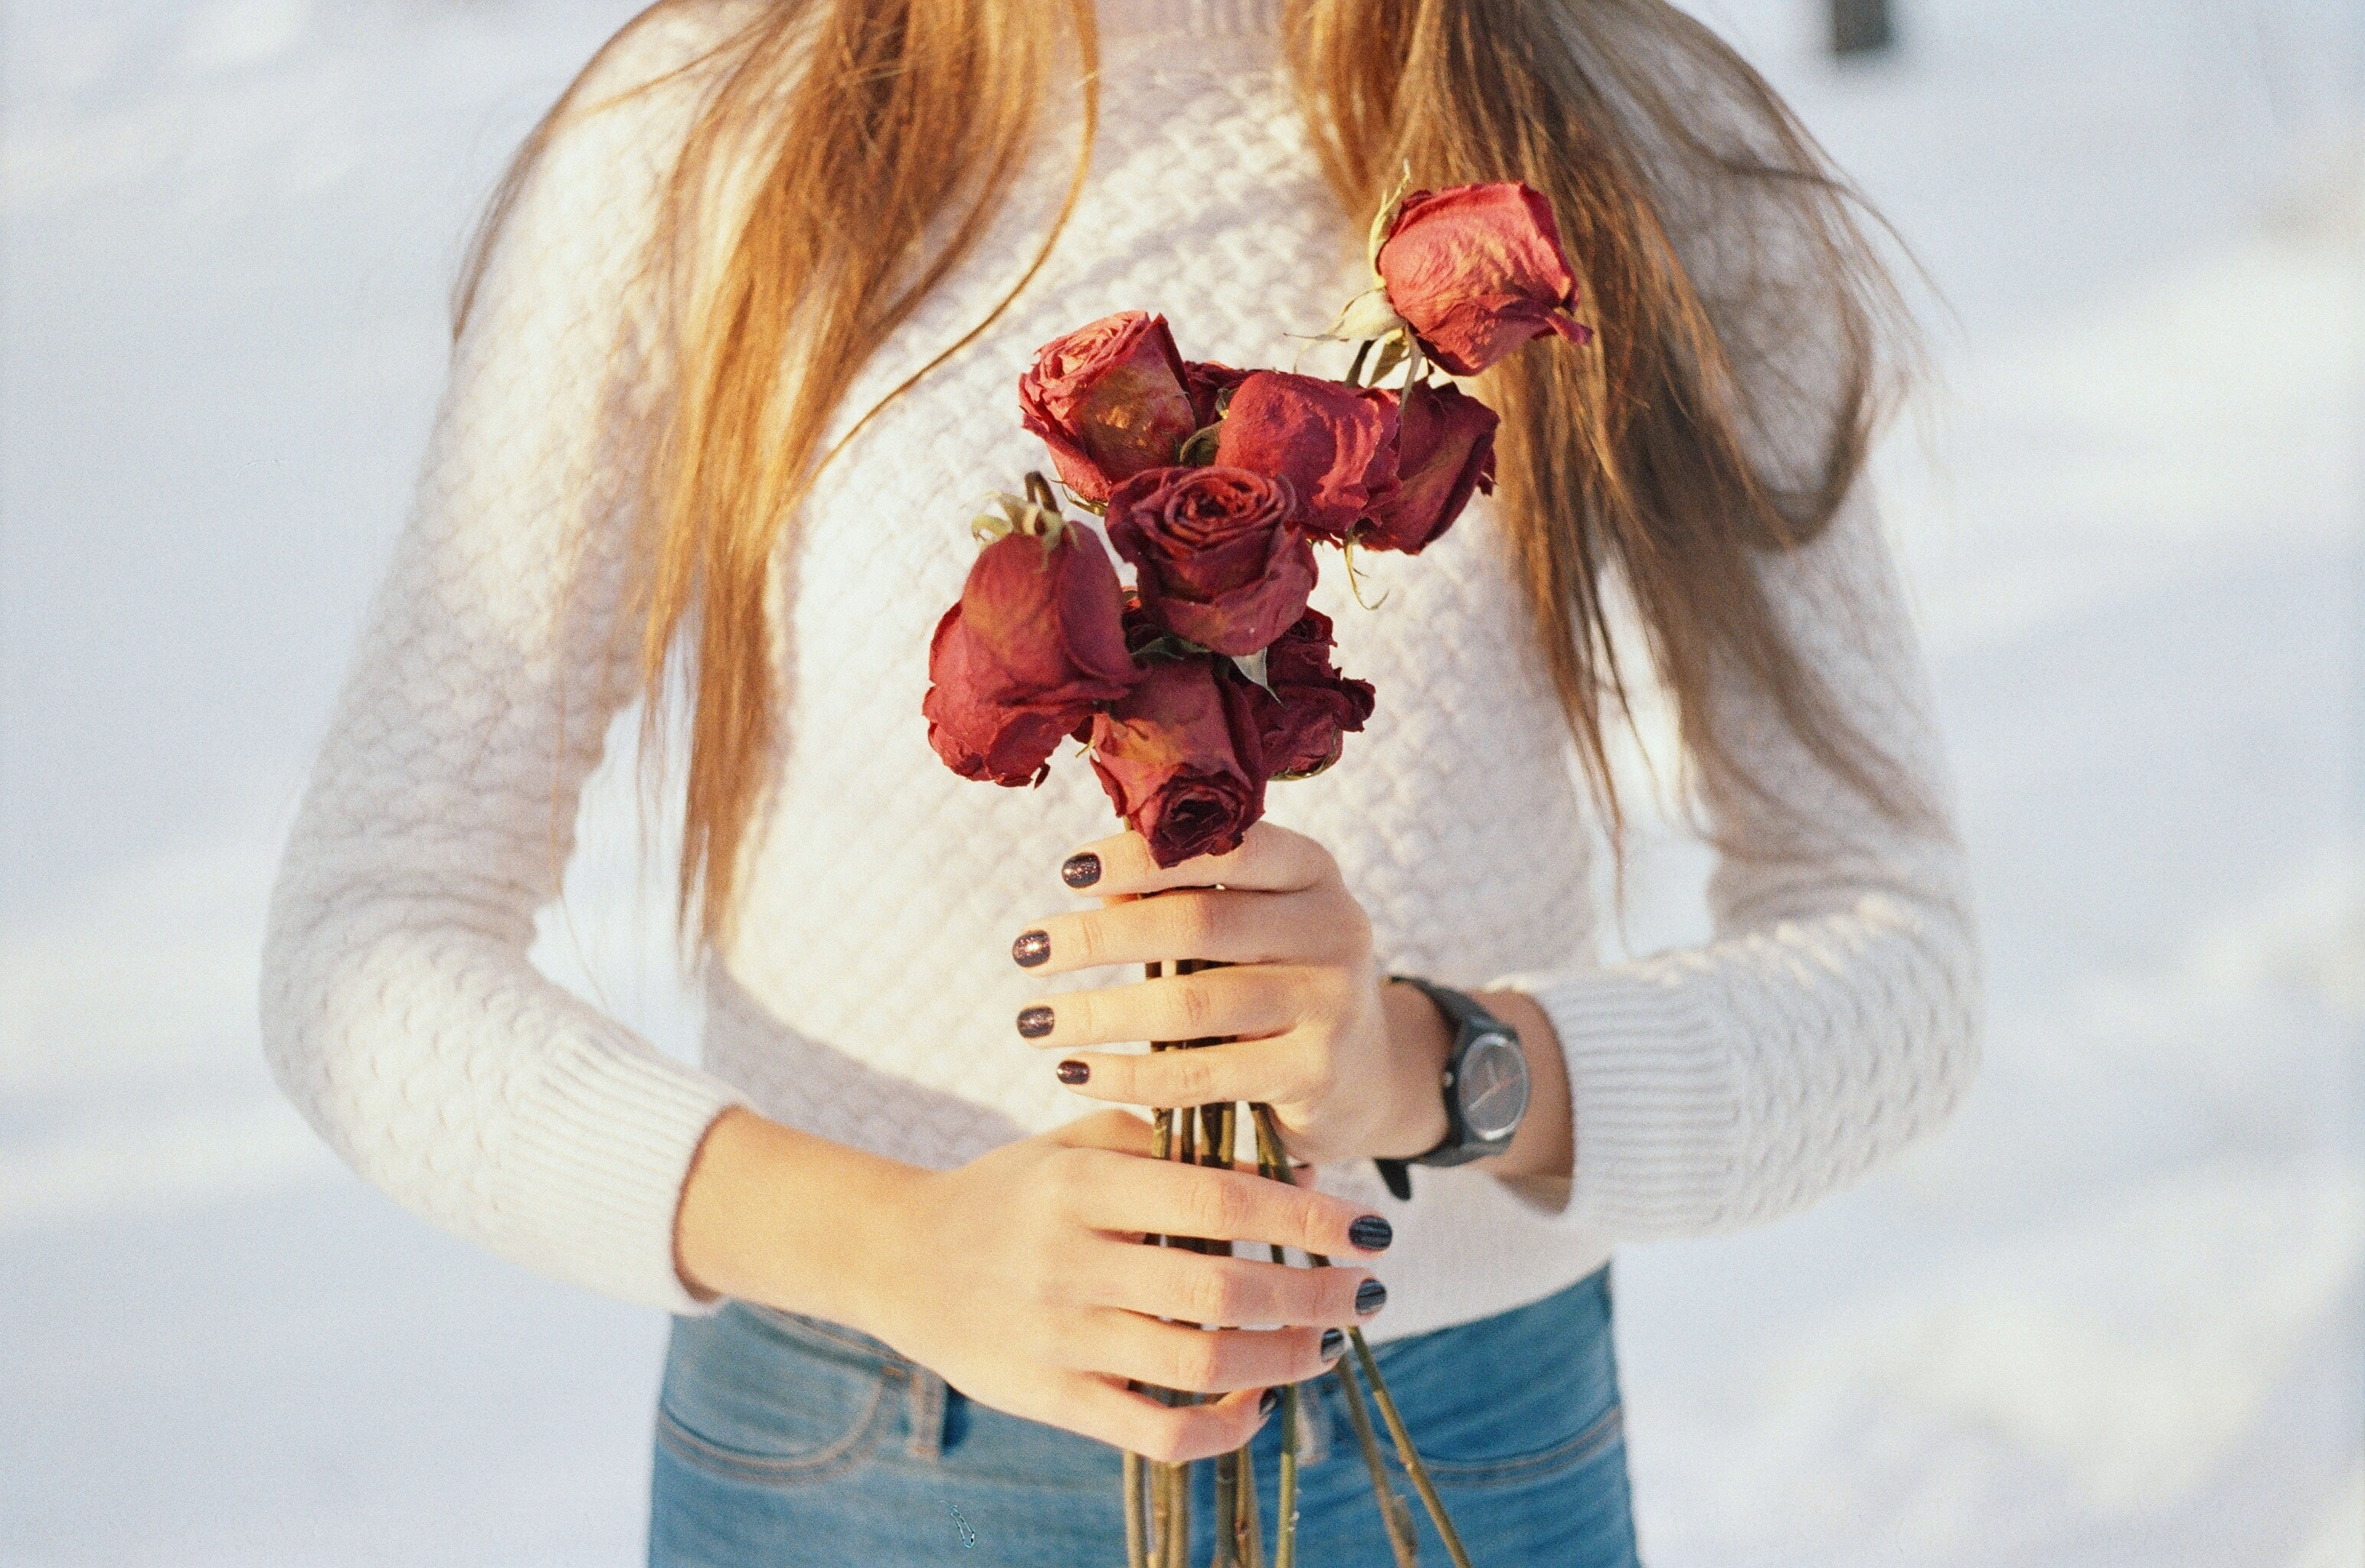 Low Shot of woman holding a bouquet of dried and wilted red roses